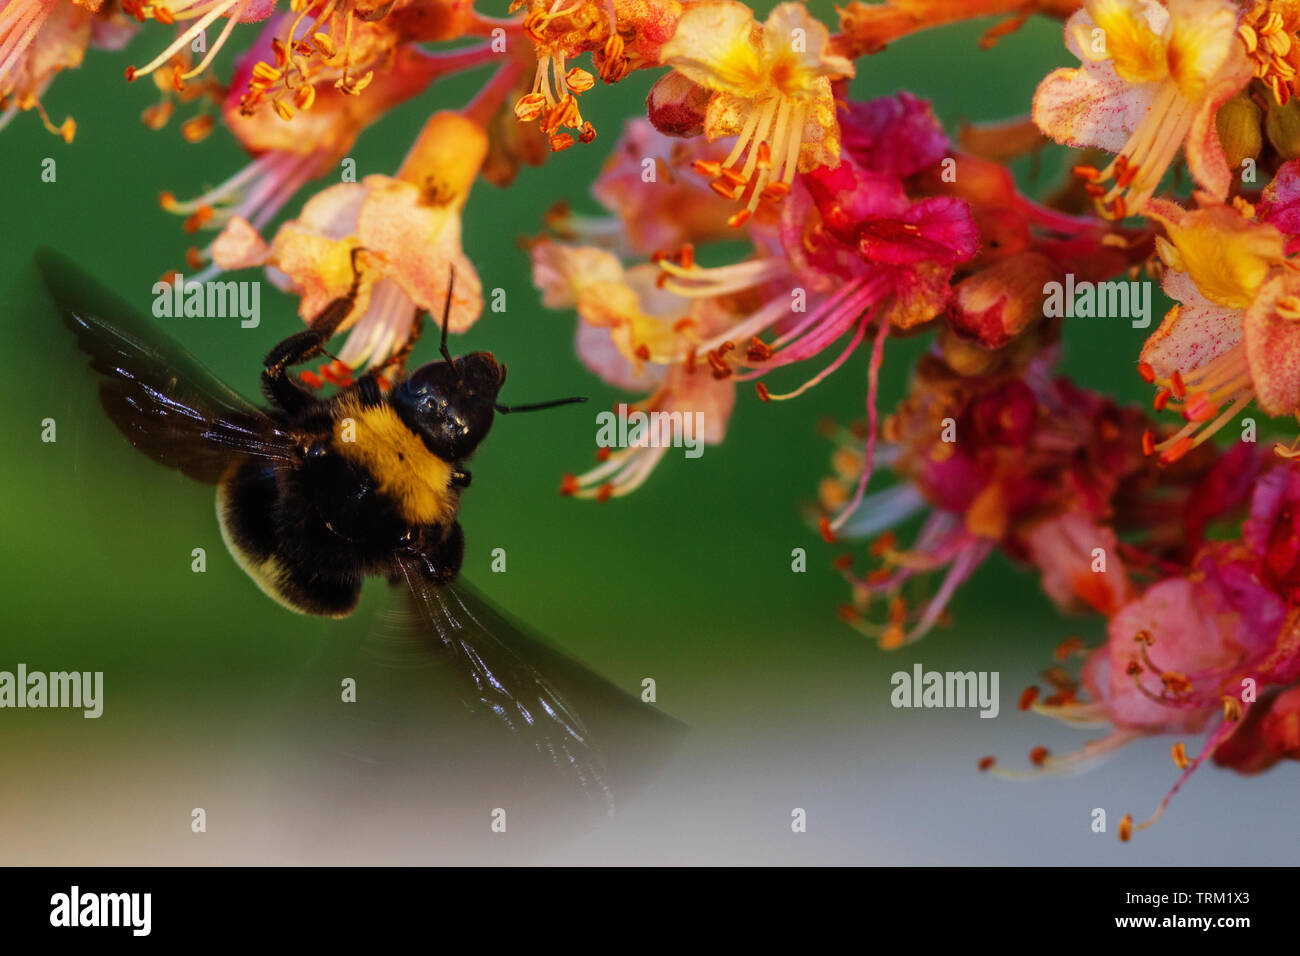 A carpenter bee visits the flowers of a 'briotii' red horsechestnut - Stock Image